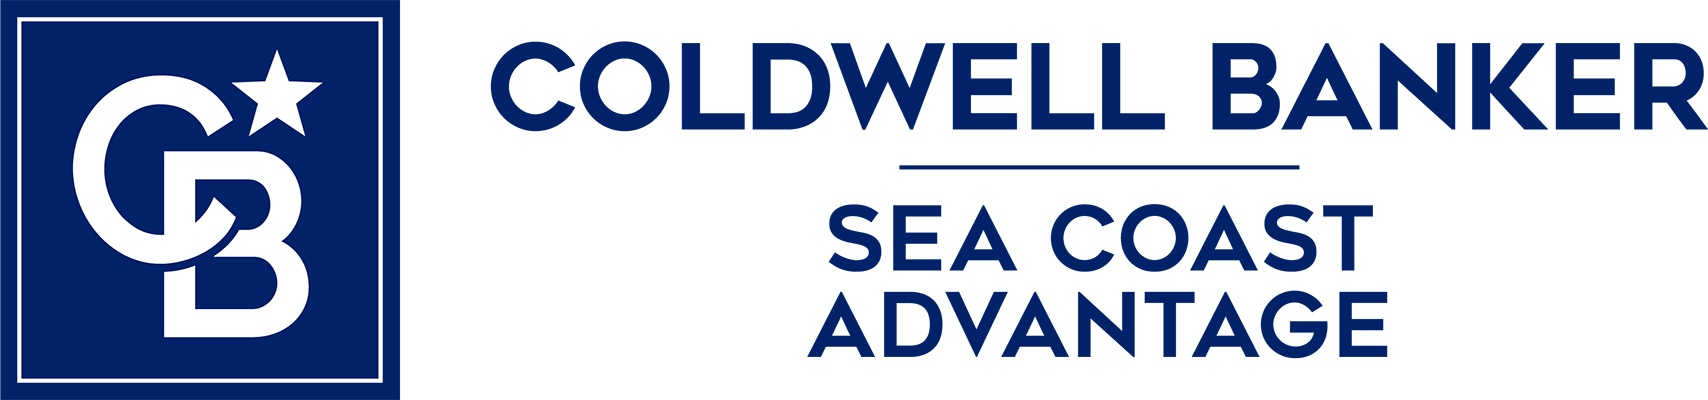 Val Hocutt - Coldwell Banker Sea Coast Advantage Realty Logo